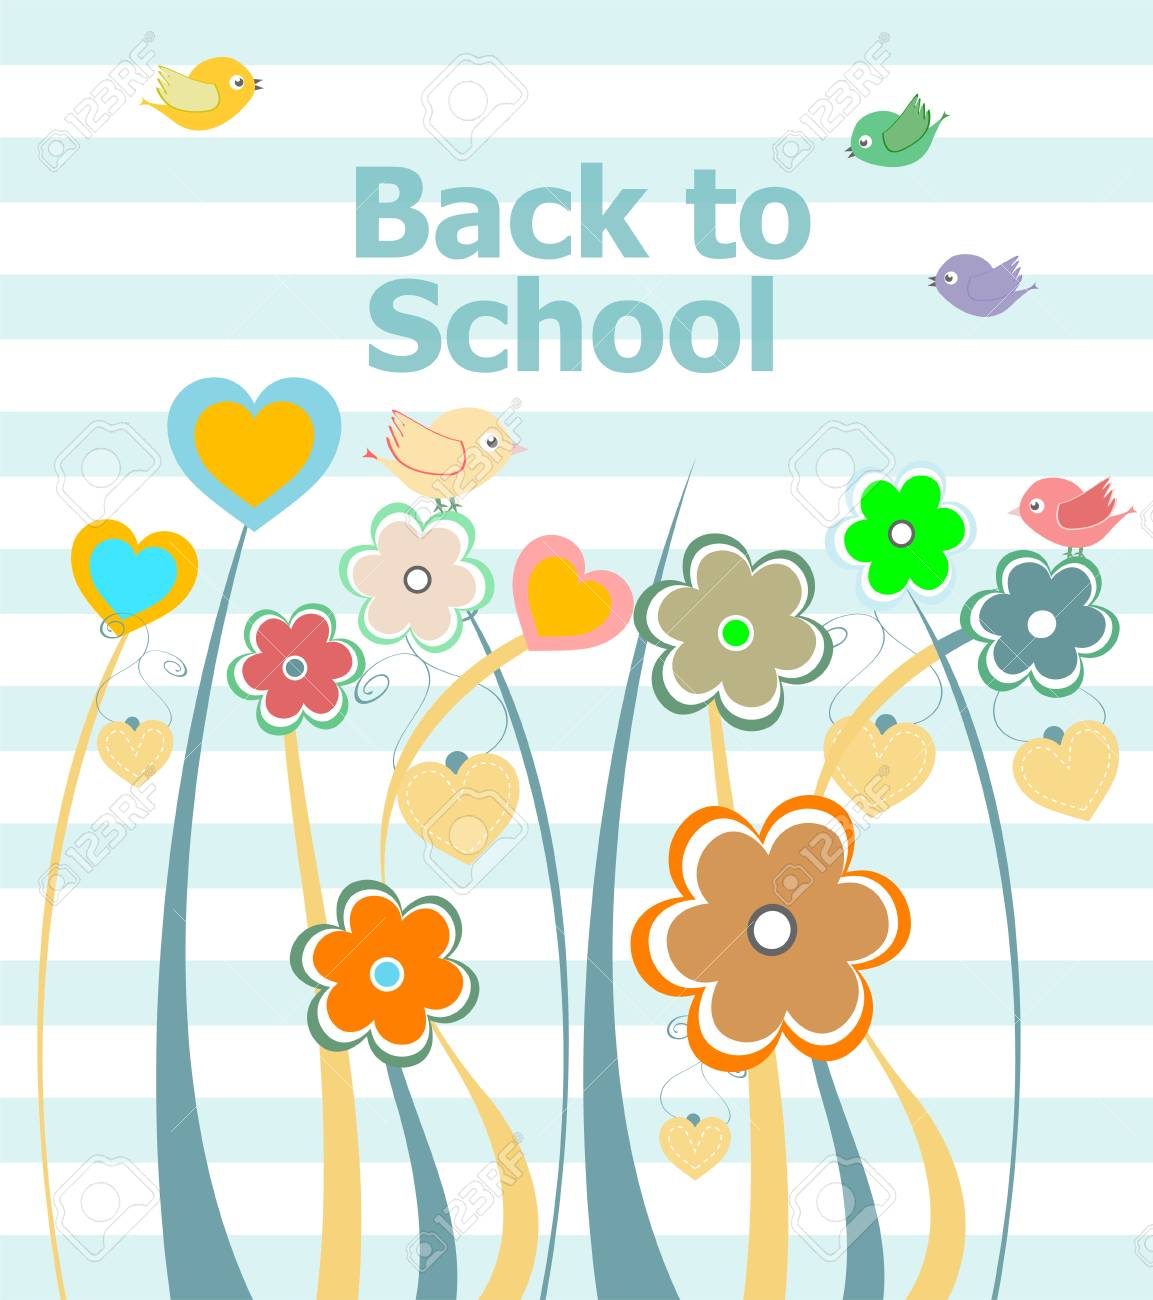 Back To School Invitation Card With Flowers Education Concept Stock